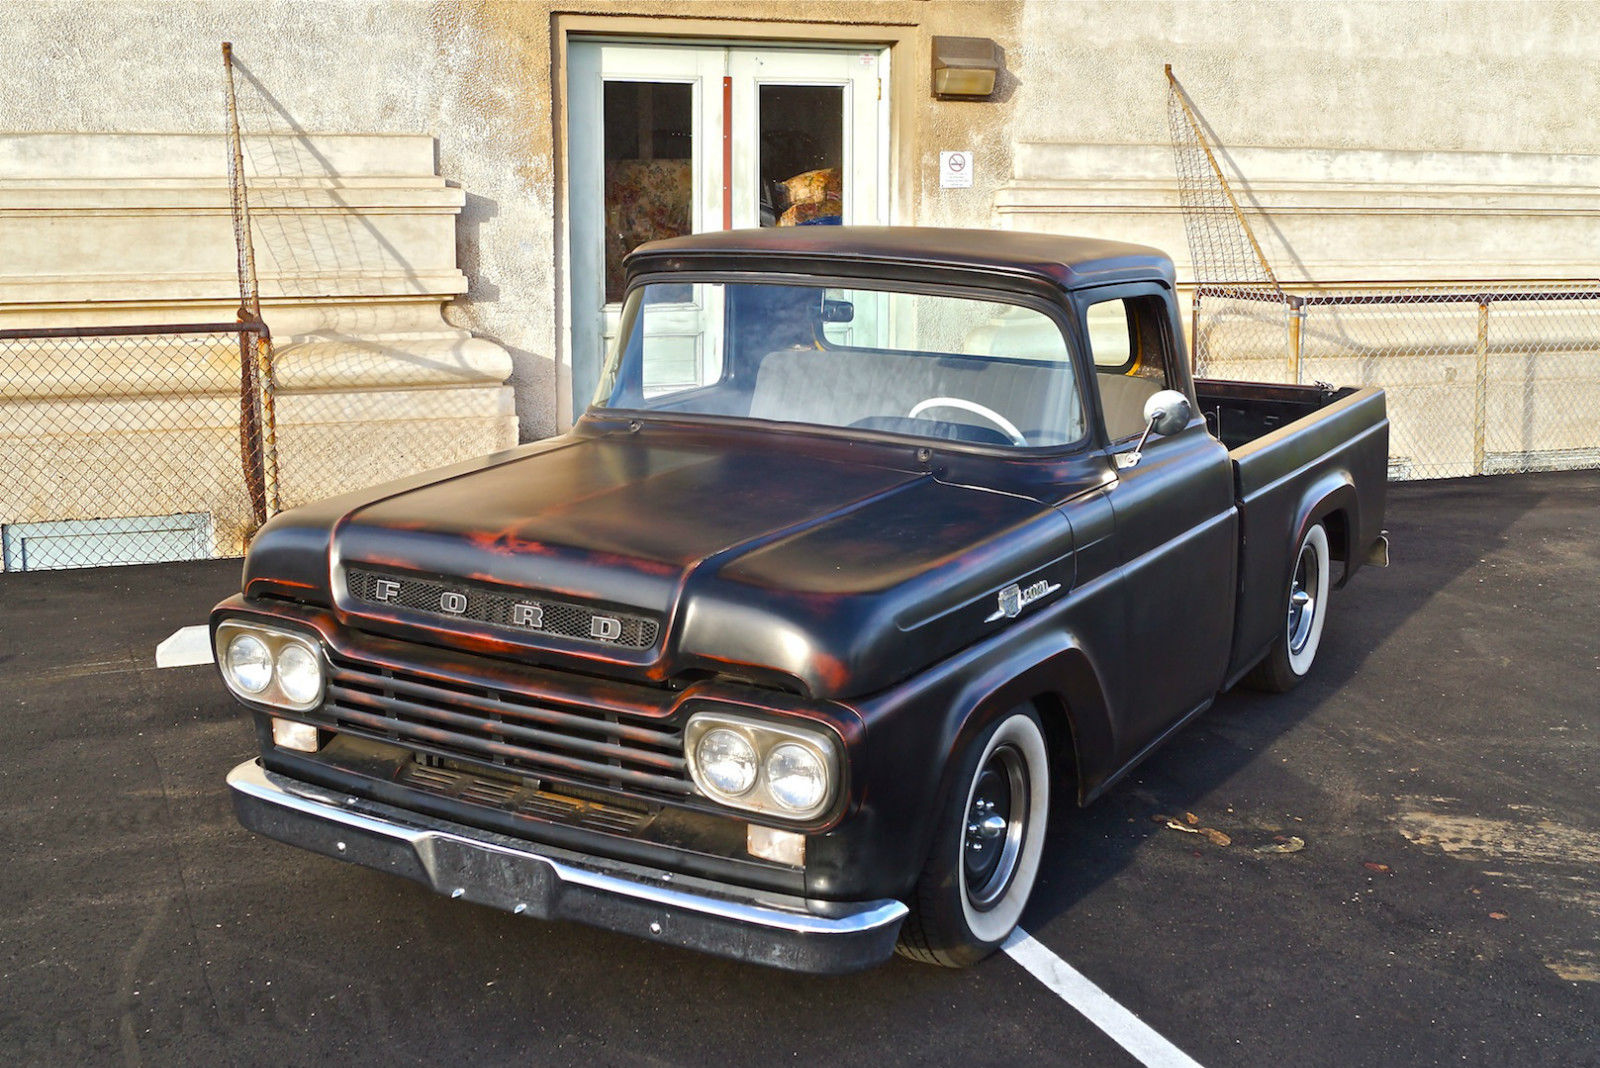 1959 ford f100 shortbed fleetside custom for sale in san diego  california  united states S10 V8 Wiring Harness S10 V8 Conversion Kit